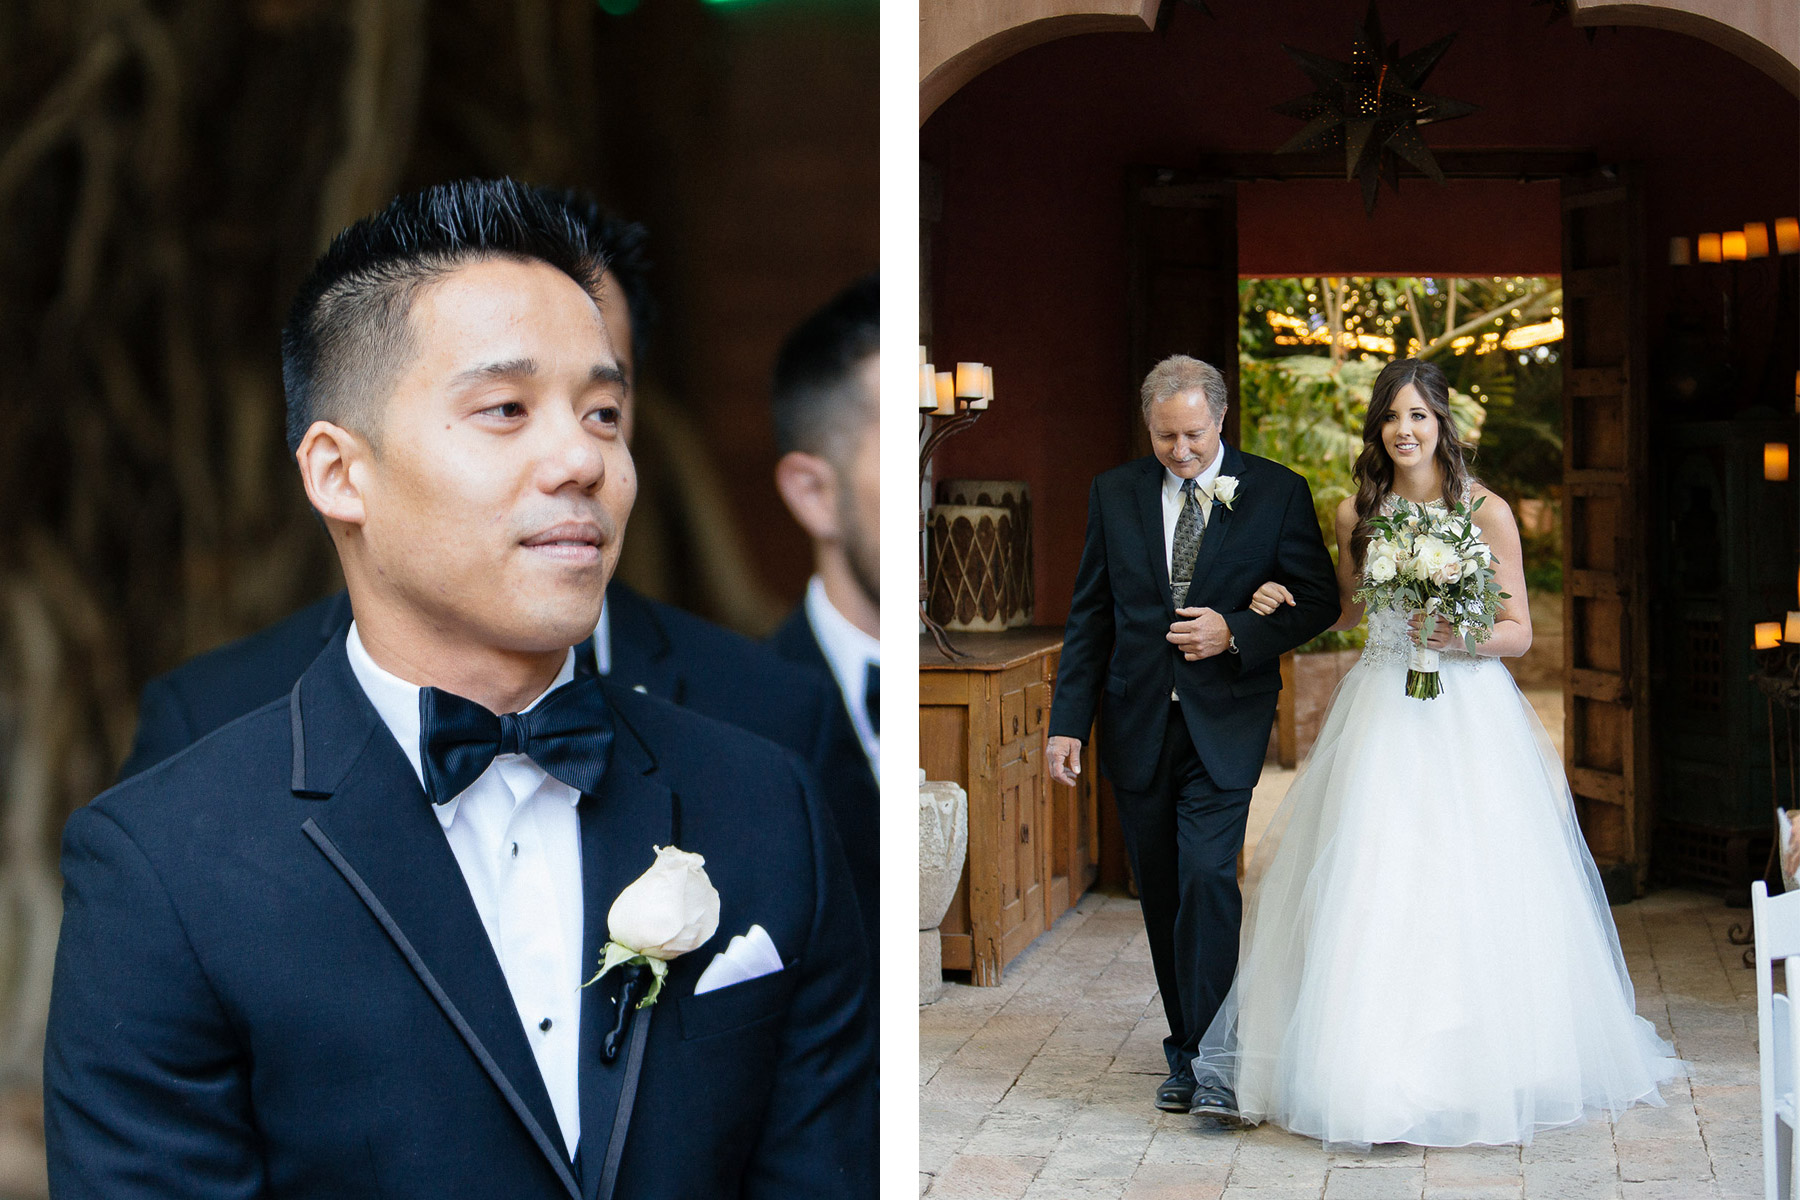 161112-Luxium-Weddings-Arizona-Jon-Madison-Boojum-Tree-First-Look-022a.jpg